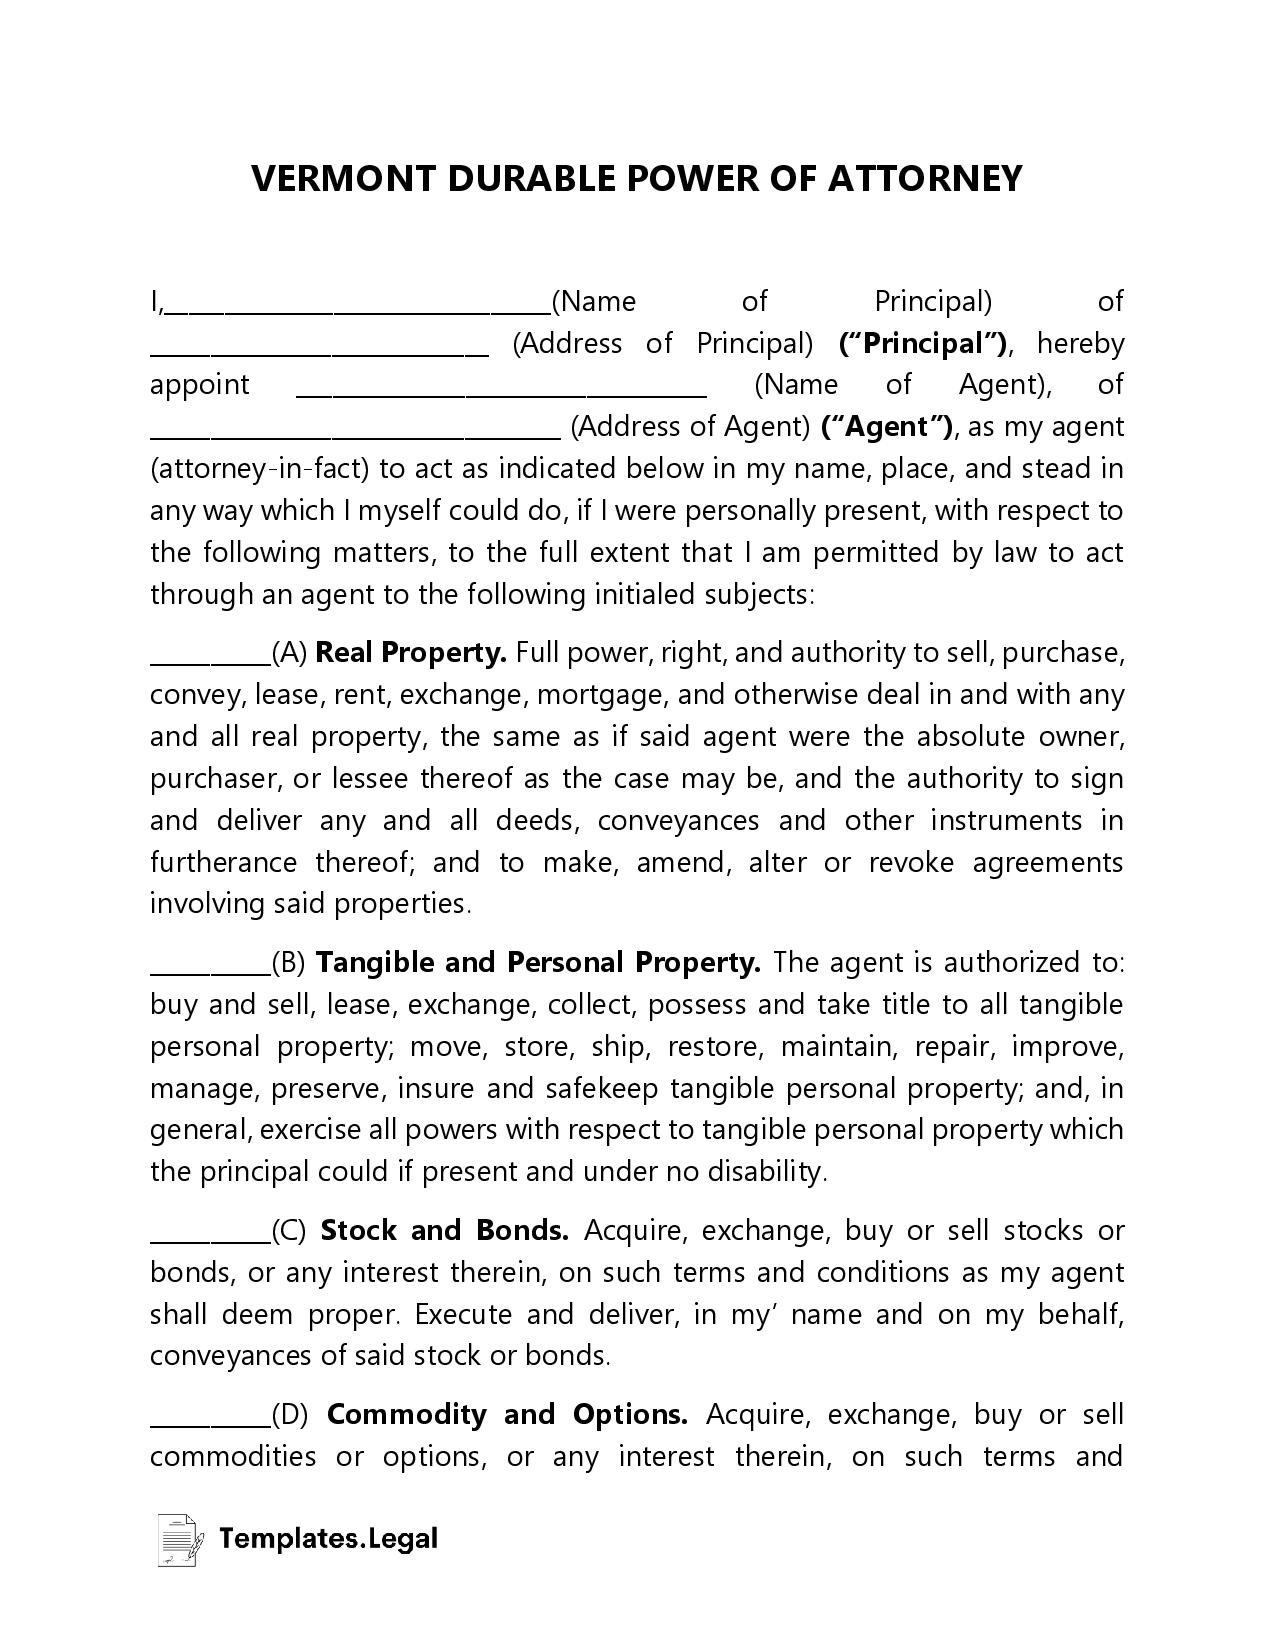 Vermont Durable Power of Attorney - Templates.Legal